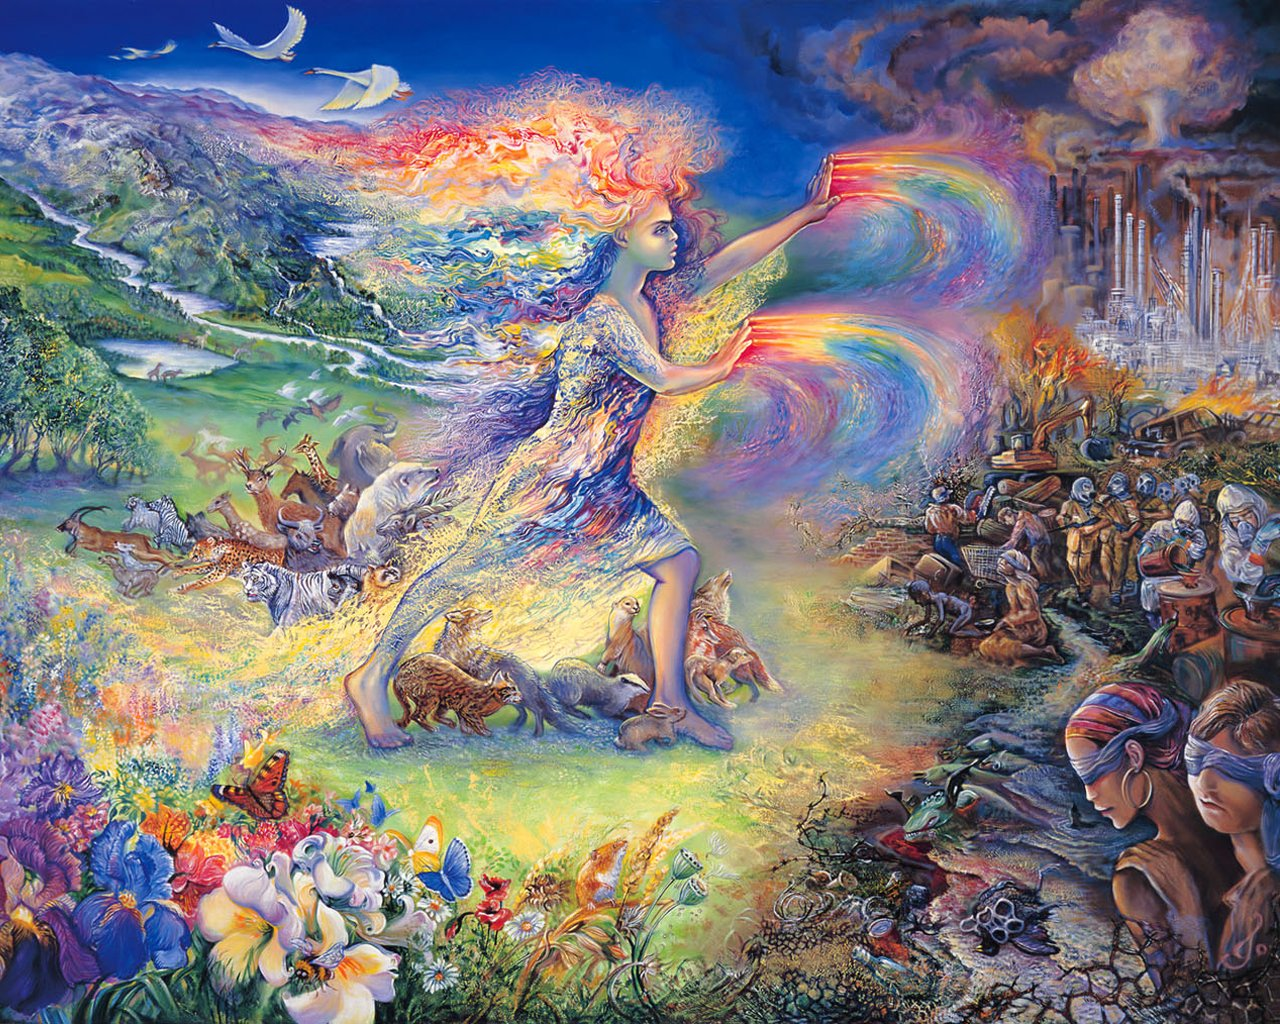 Fantasy_wallpapers_pictures_screensavers__art_drawing_paintings_no-more.jpg